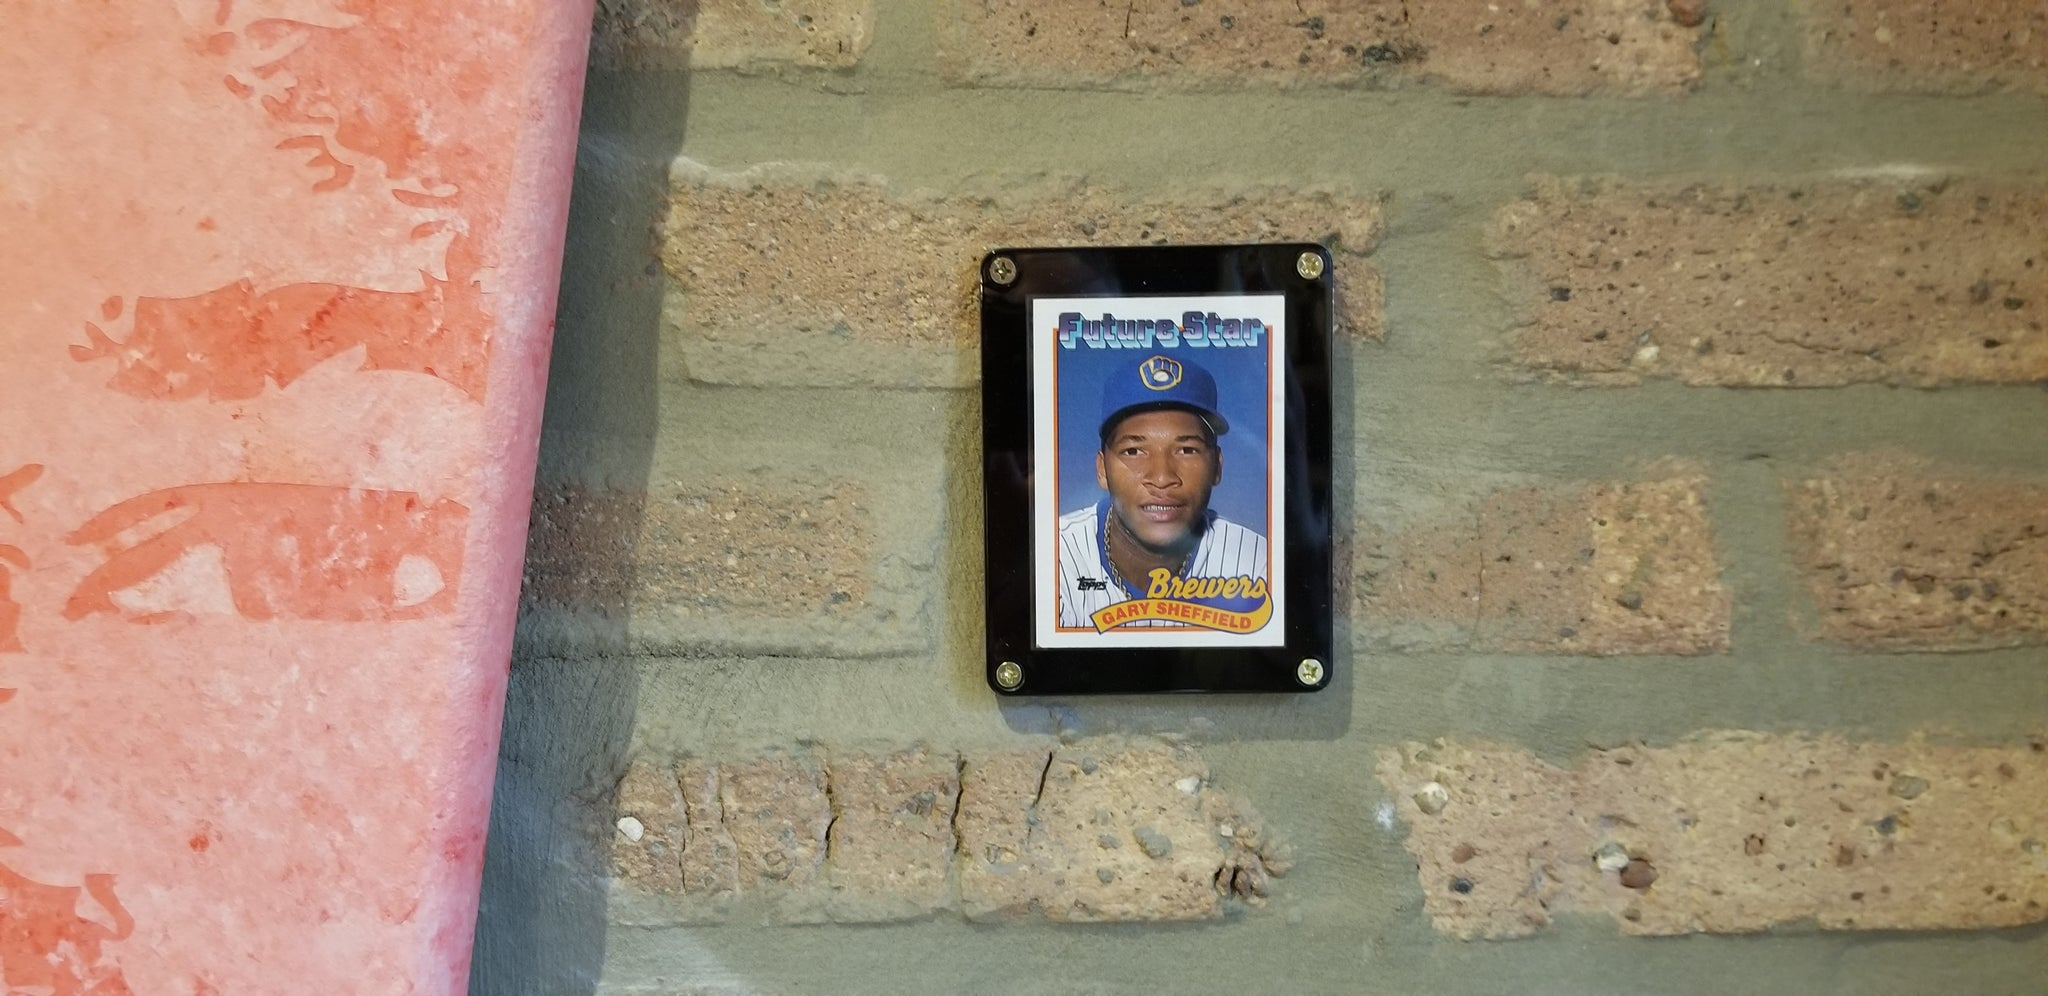 Baseball card art by Matthew Lee Rosen (aka Matthew Rosen) - 1989 Topps Future Star: Gary Sheffield (Giant Gum Stick)